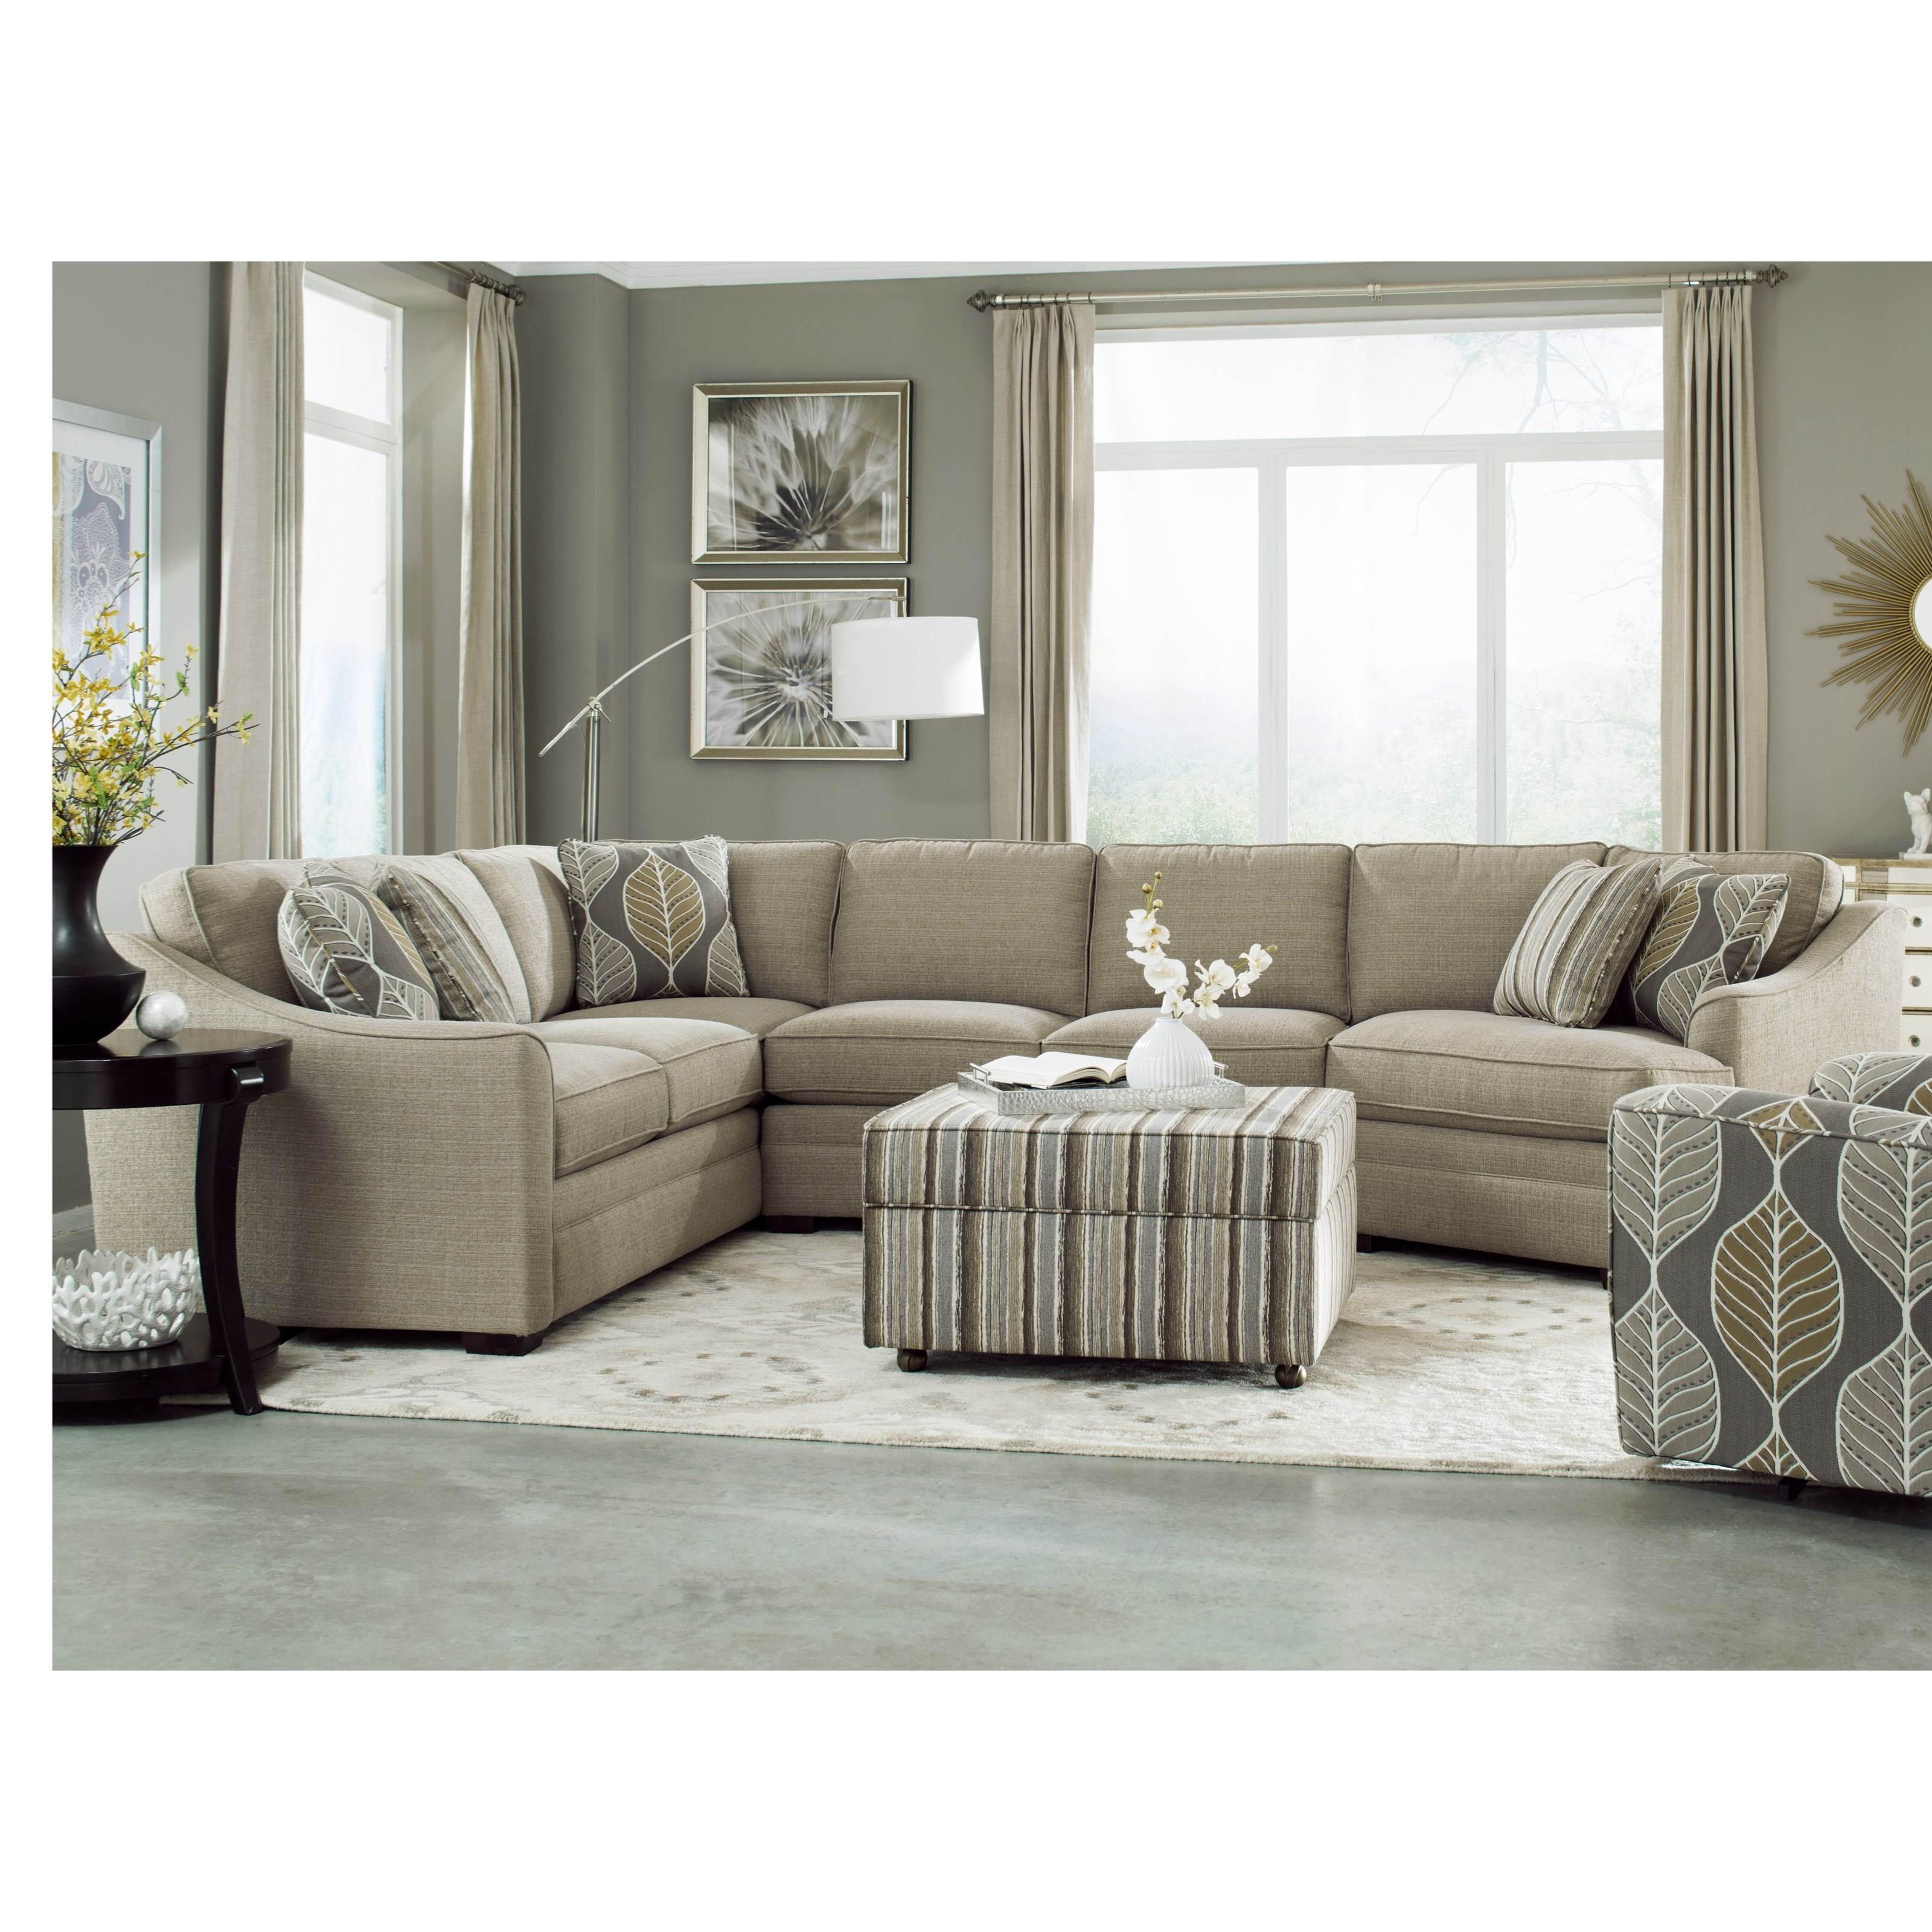 Hickory Craft F9 Custom Collection <B>Customizable</b> 3 Piece Throughout Most Recent Avery 2 Piece Sectionals With Laf Armless Chaise (Gallery 20 of 20)